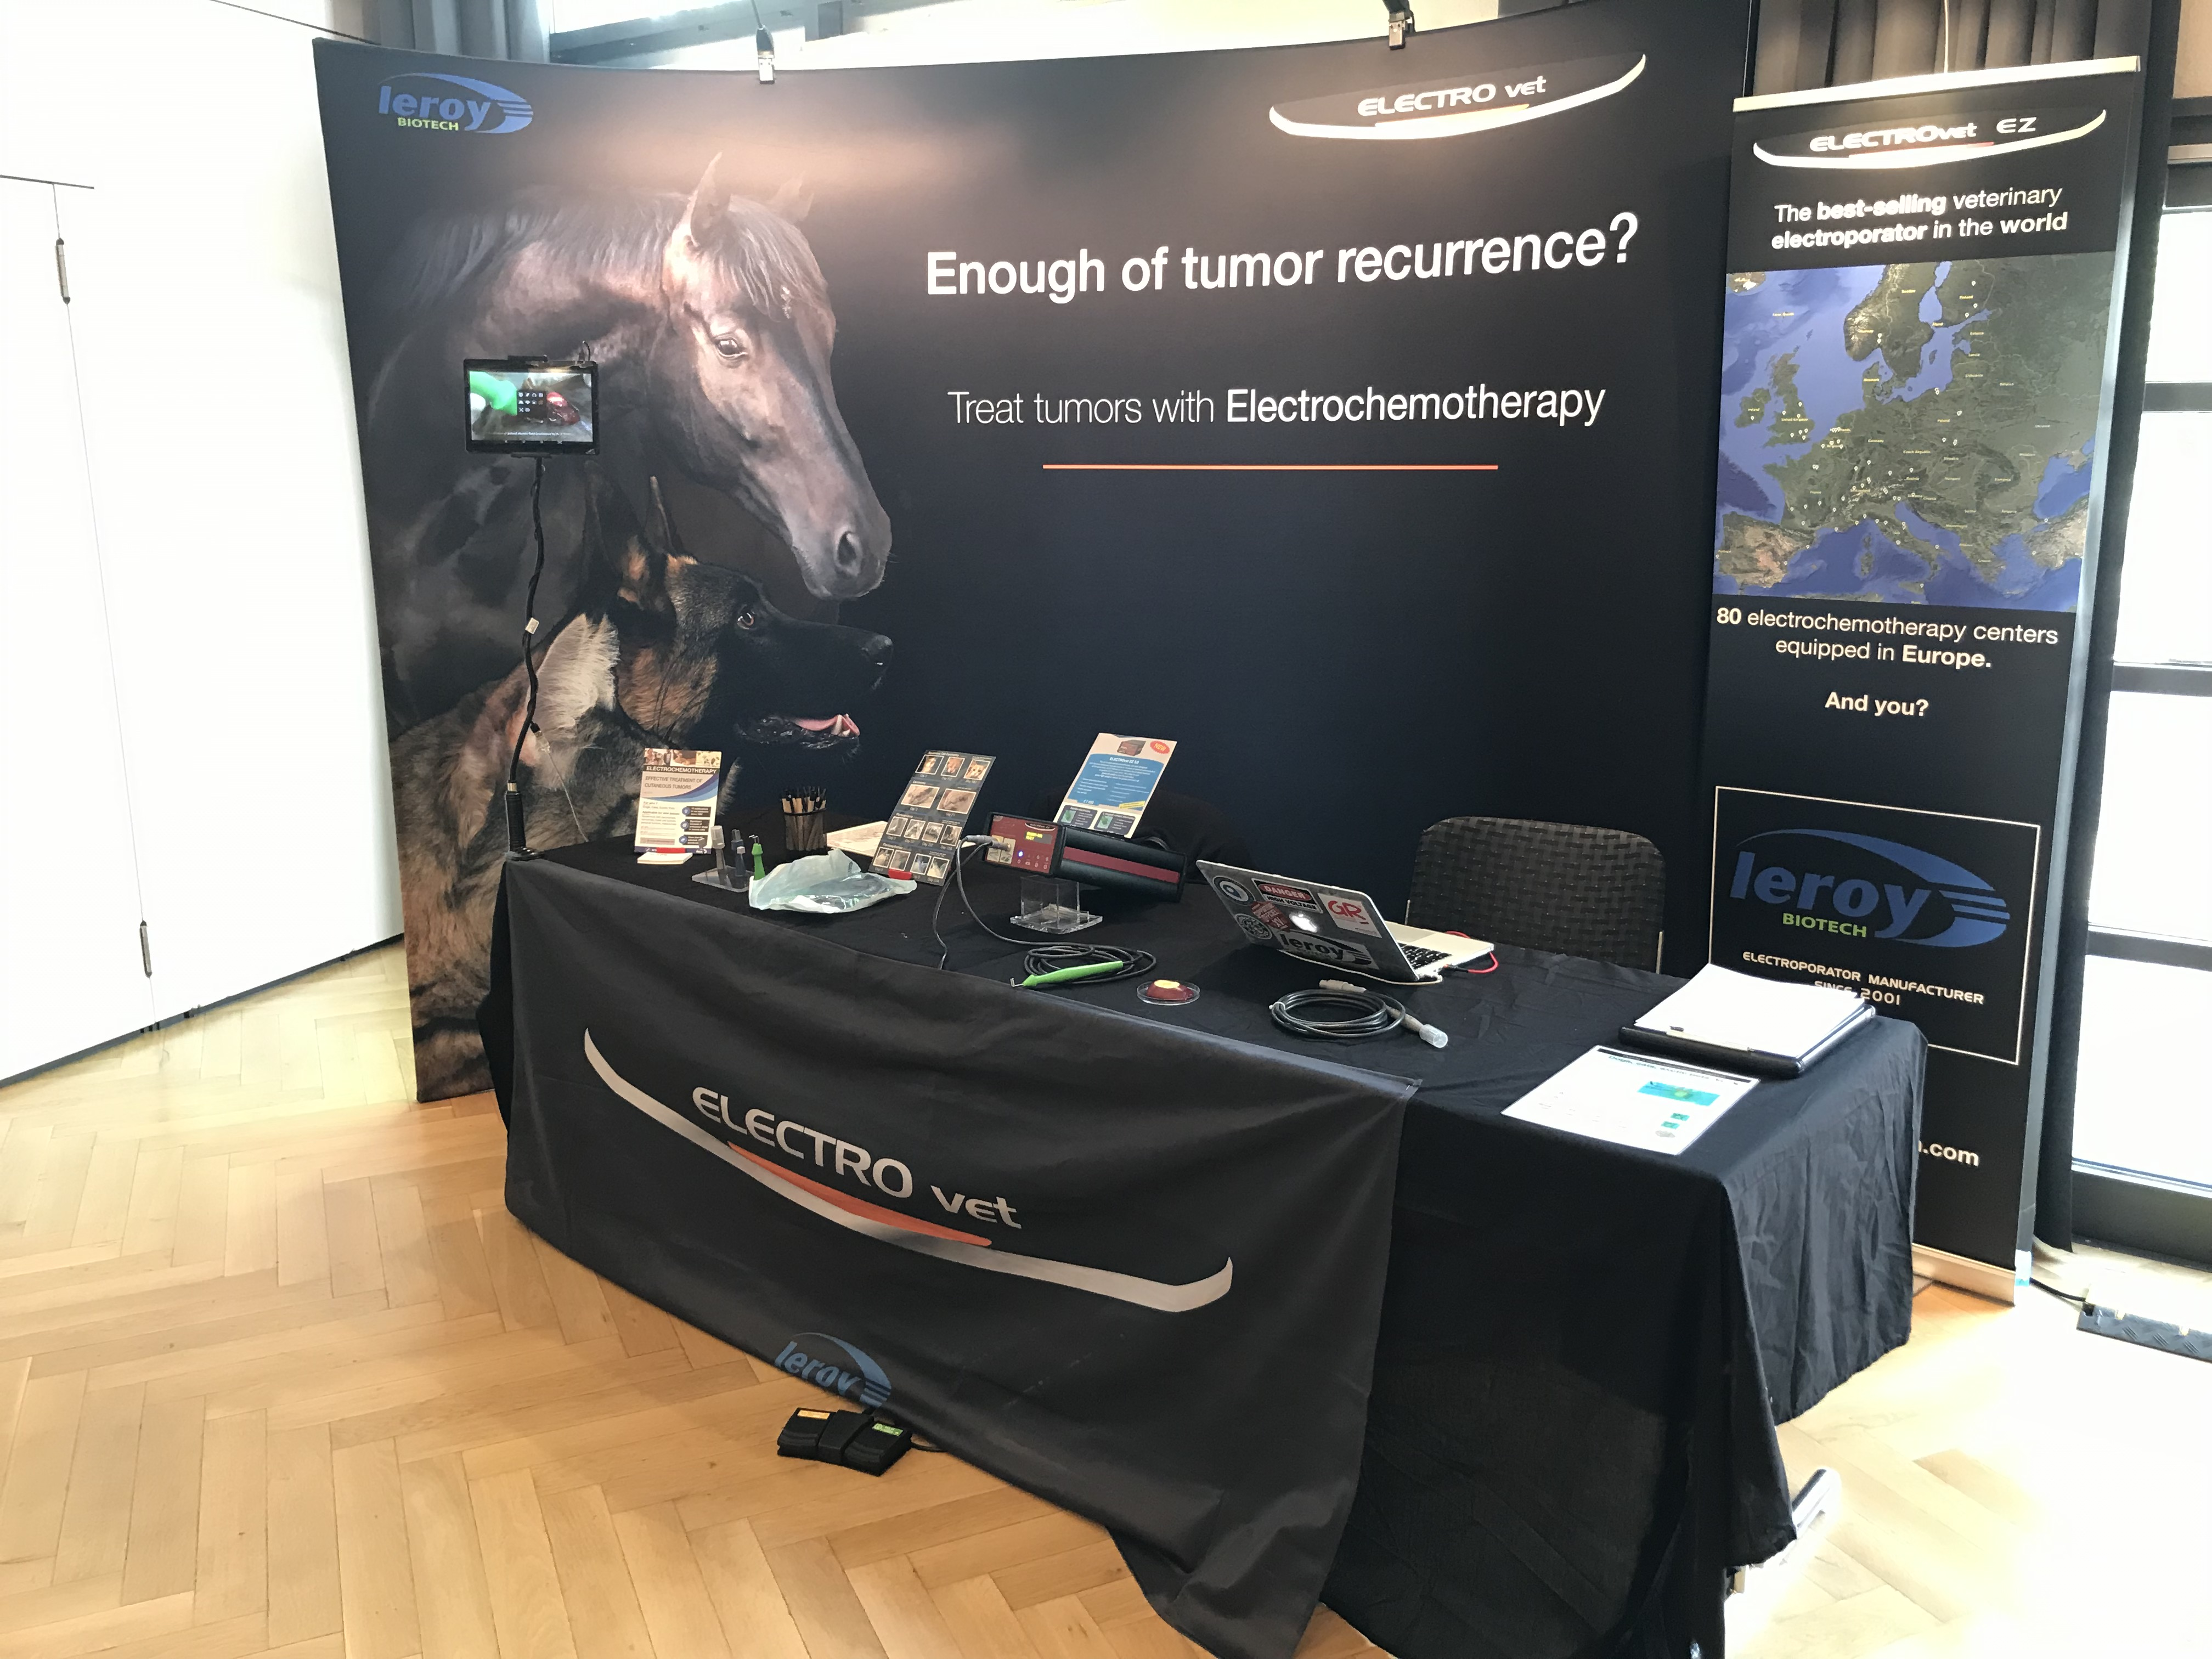 LEROY BIOTECH is very pleased to be present at the European Society of Veterinary Oncology (ESVONC) Annual Conference in Frankfurt, Germany.